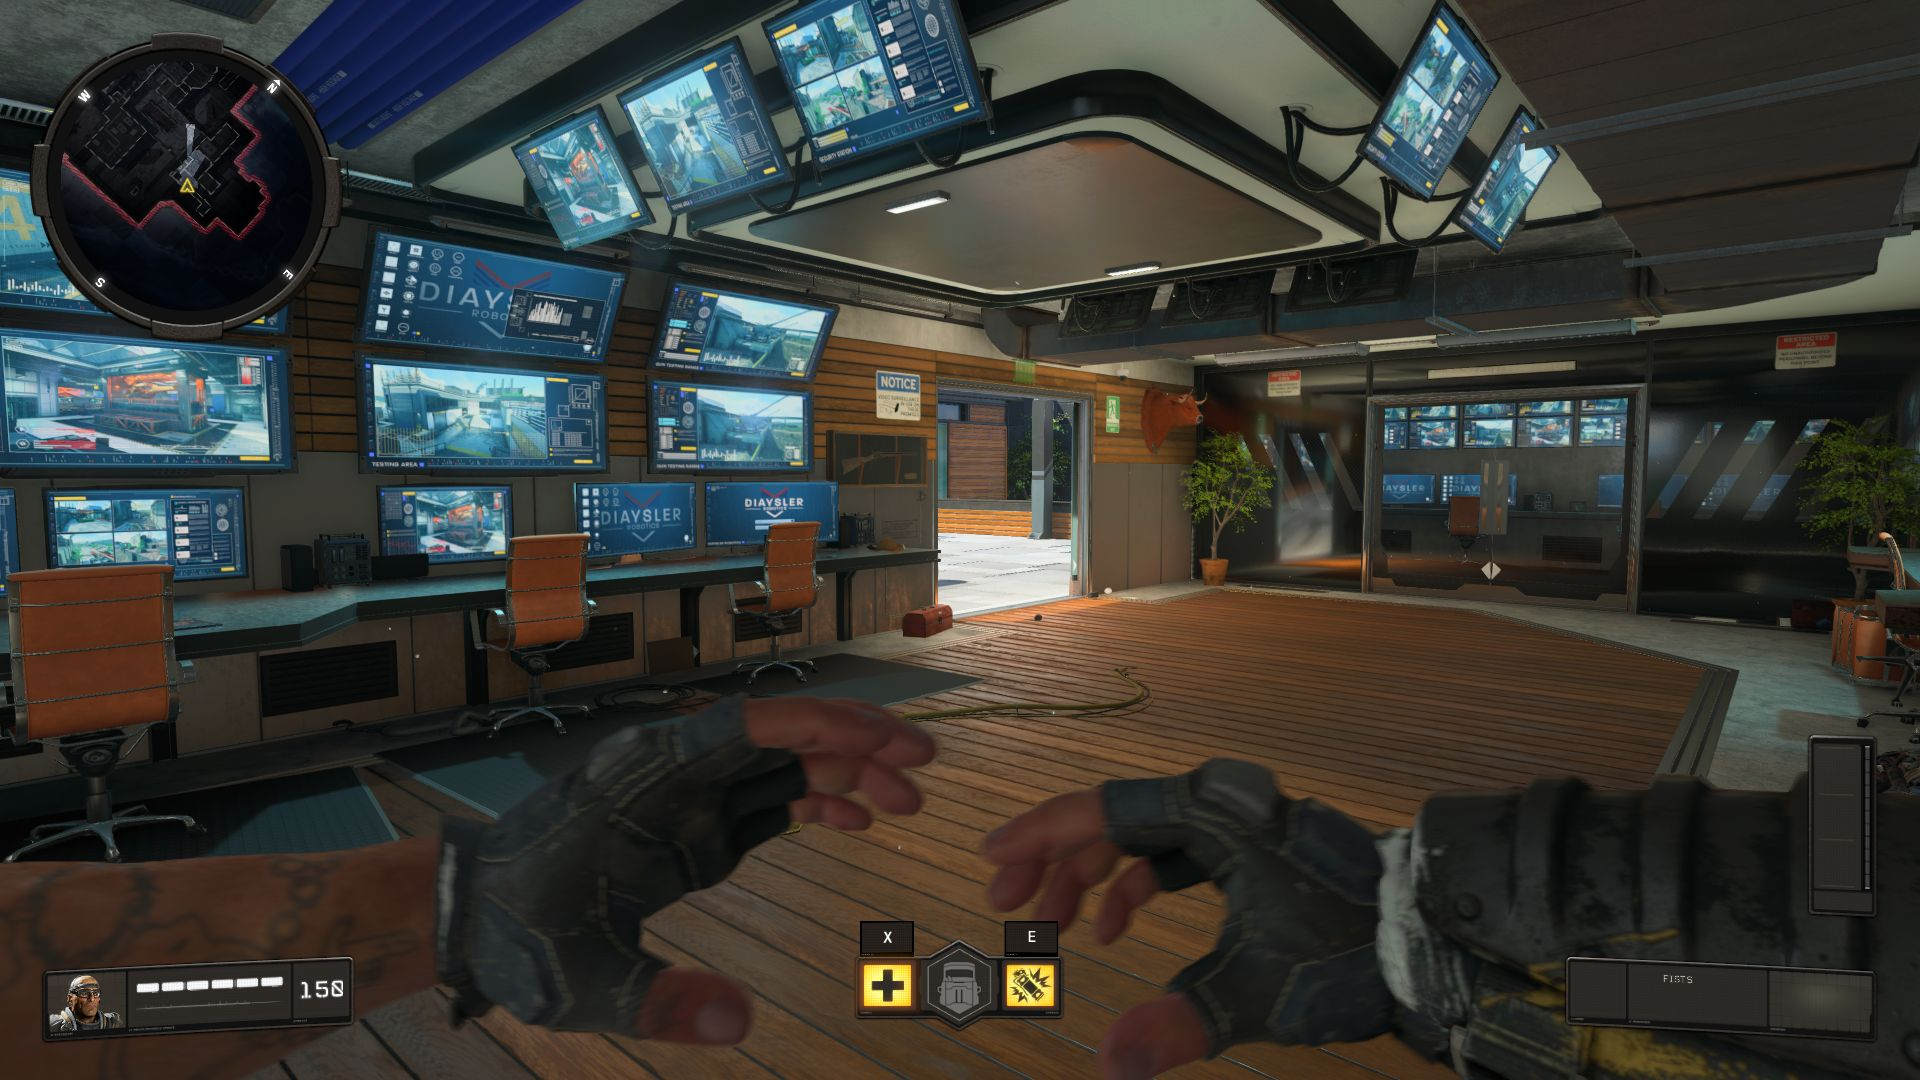 Call of Duty Black Ops 4 Notebook and Desktop Benchmarks